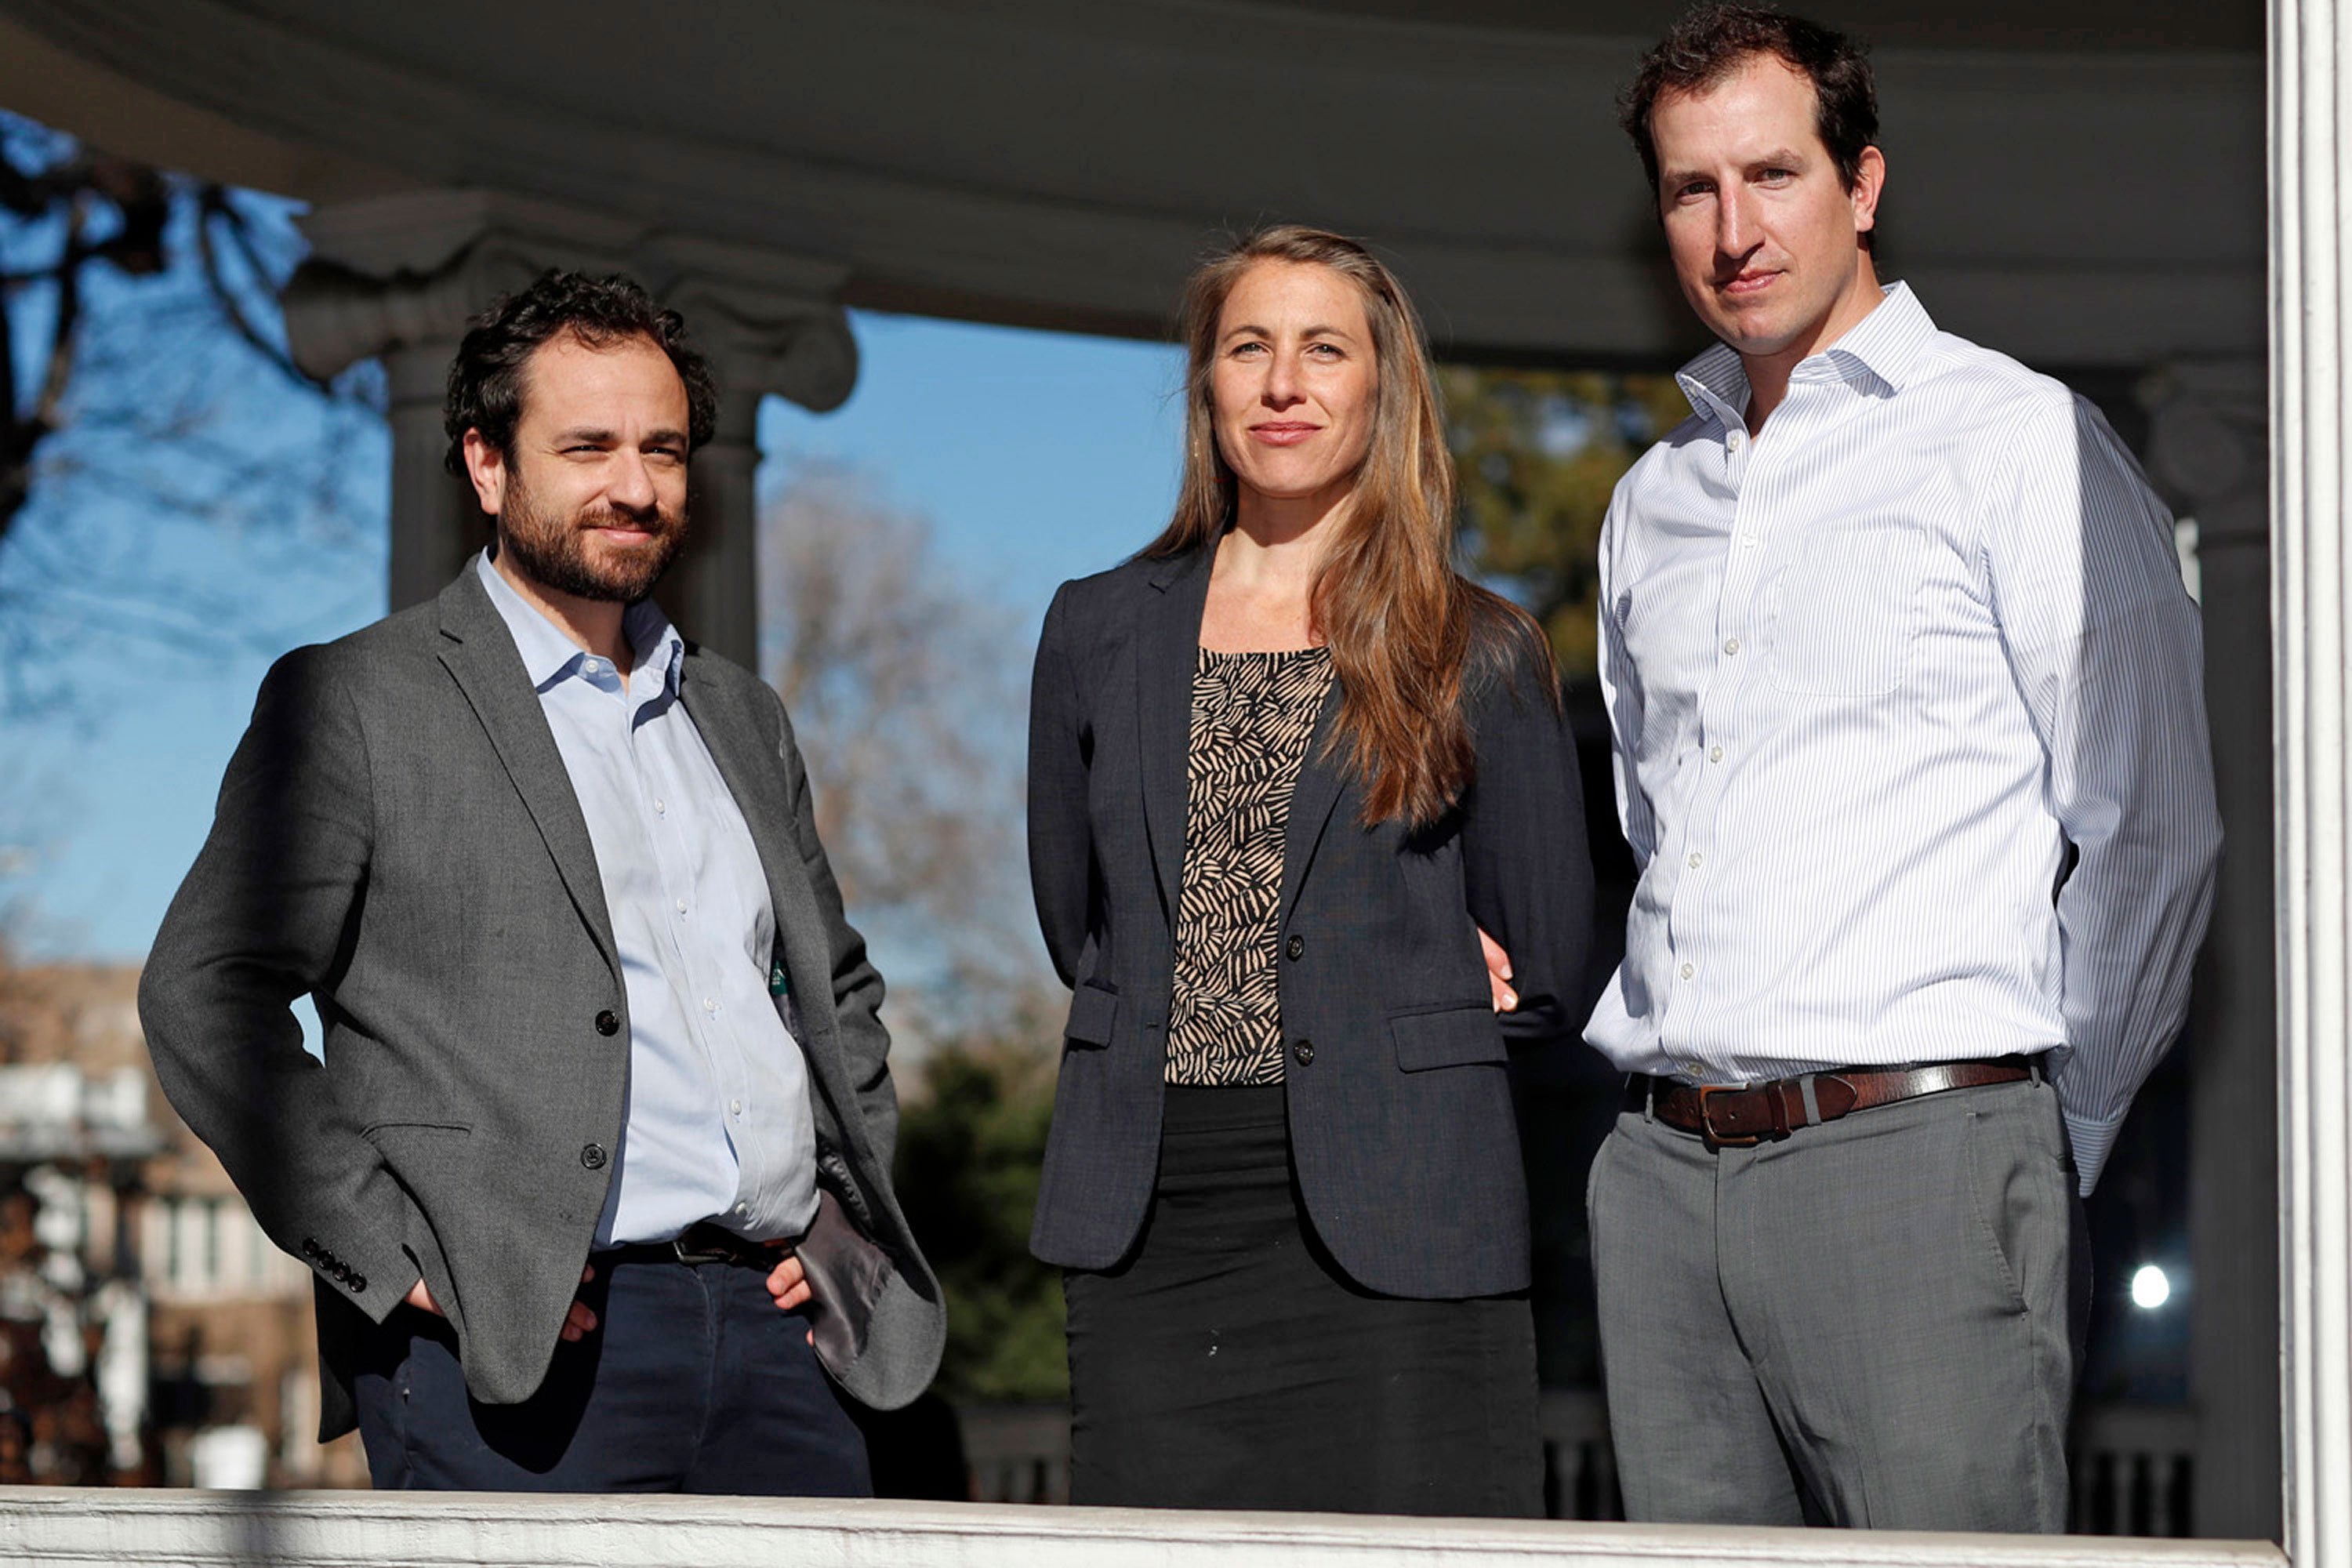 In this Dec. 20, 2018 file photo attorneys, from left, David Seligman, Nina DiSalvo and Alexander Hood, of Towards Justice, pose outside the organization's office east of downtown Denver. Low paid childcare workers from around the world could soon learn whether they will be getting payments from a proposed $65.5 million class action settlement. A federal judge in Denver is scheduled to hold a hearing Thursday, July 18, 2019, on whether to grant final approval to the deal, which was announced in January.